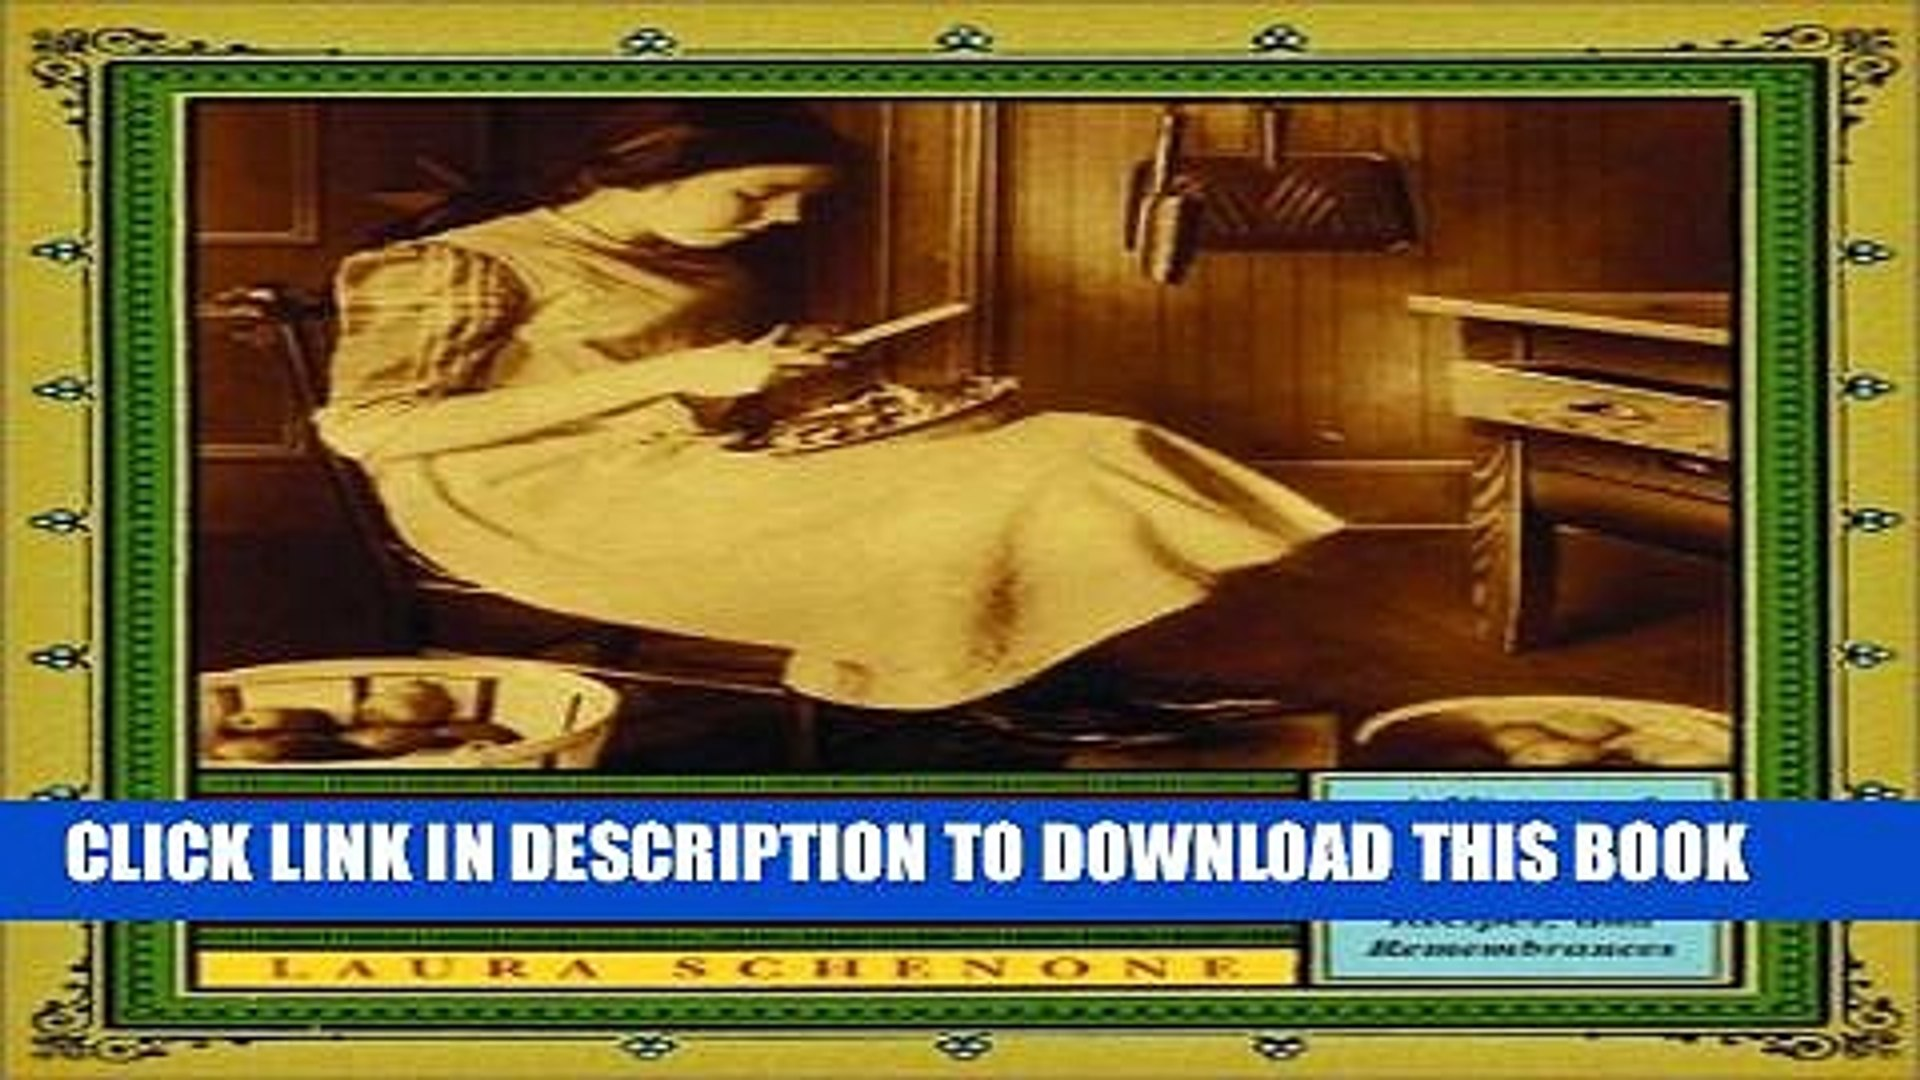 [PDF] A Thousand Years Over a Hot Stove: A History of American Women Told Through Food, Recipes,